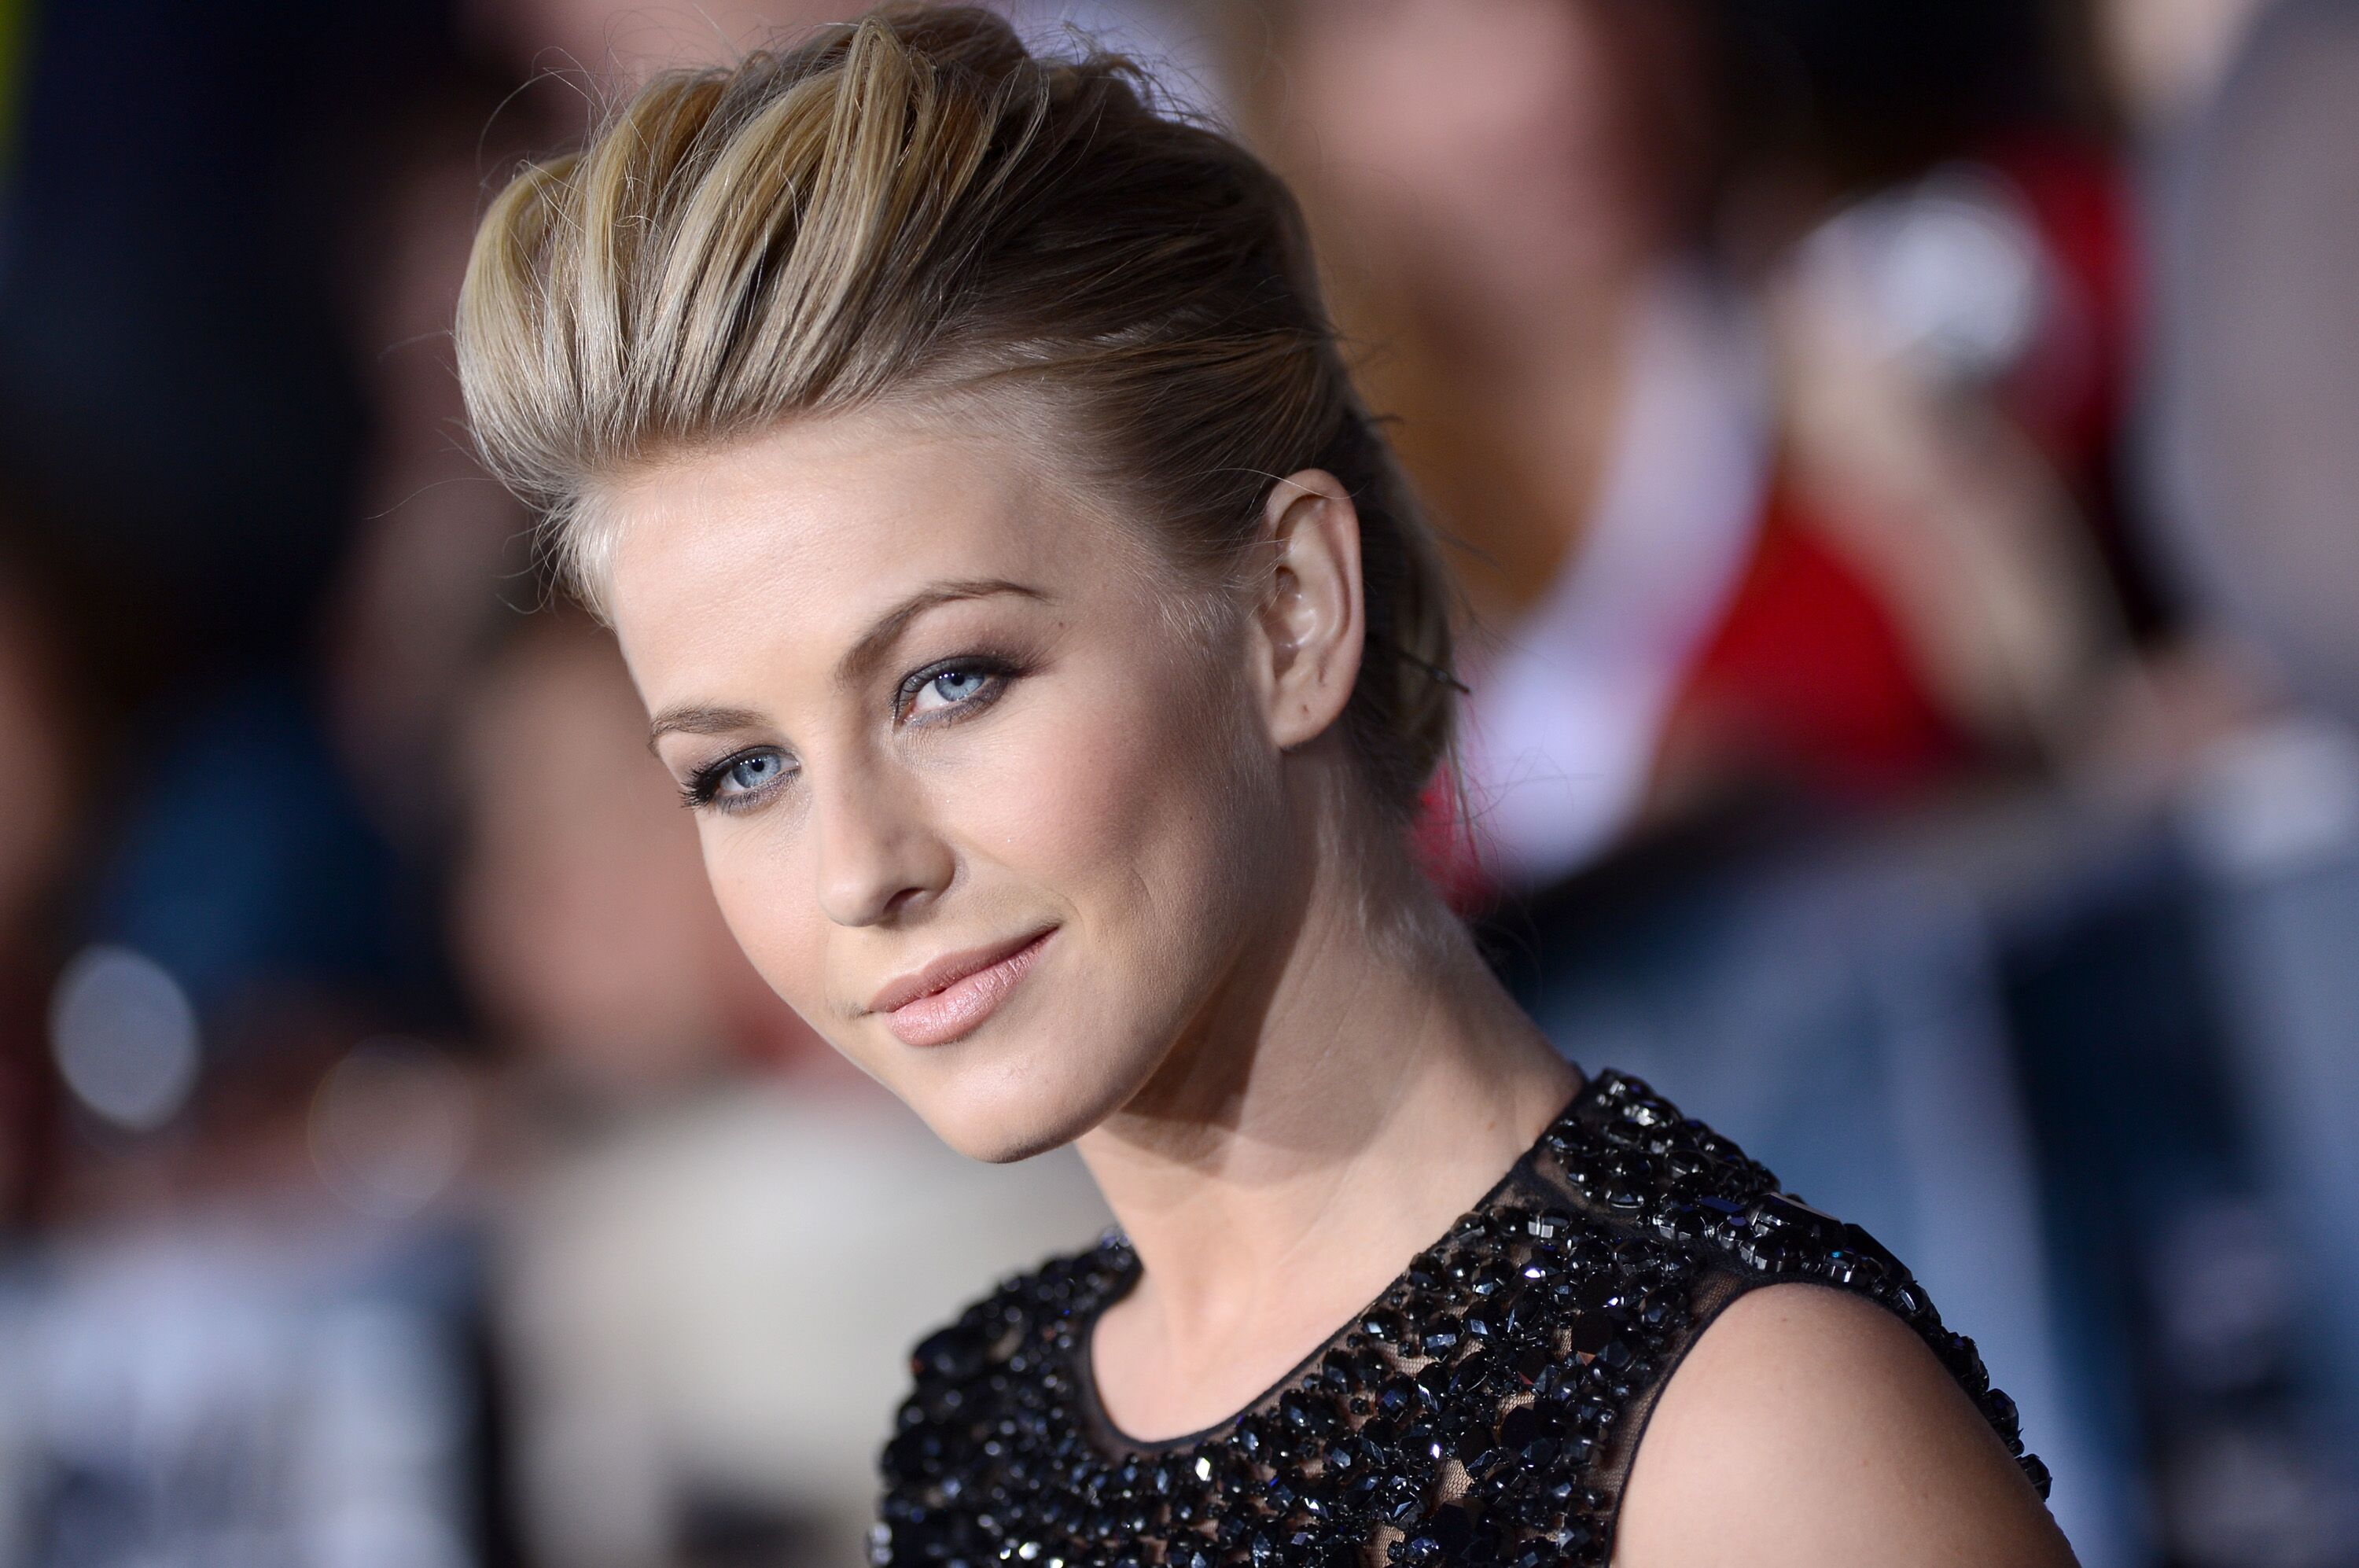 """Julianne Hough at the premiere of """"The Twilight Saga: Breaking Dawn - Part 2"""" at Nokia Theatre L.A. Live on November 12, 2012 California. 